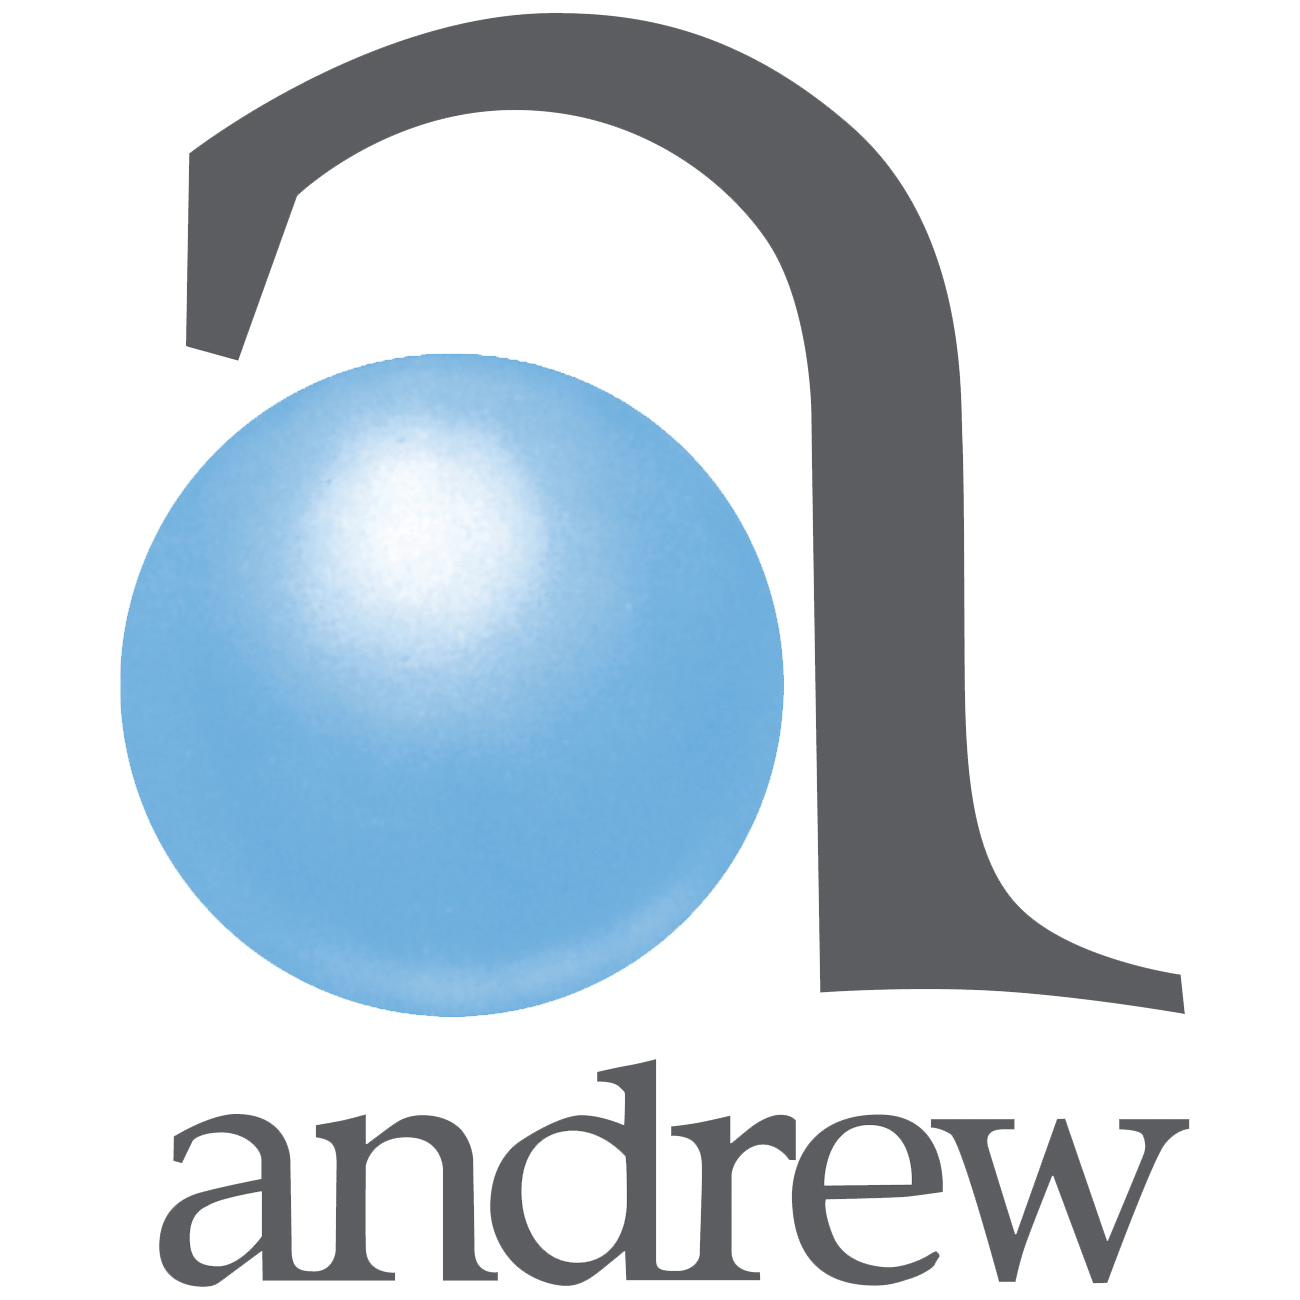 Andrew Engineering Limited (Retina)